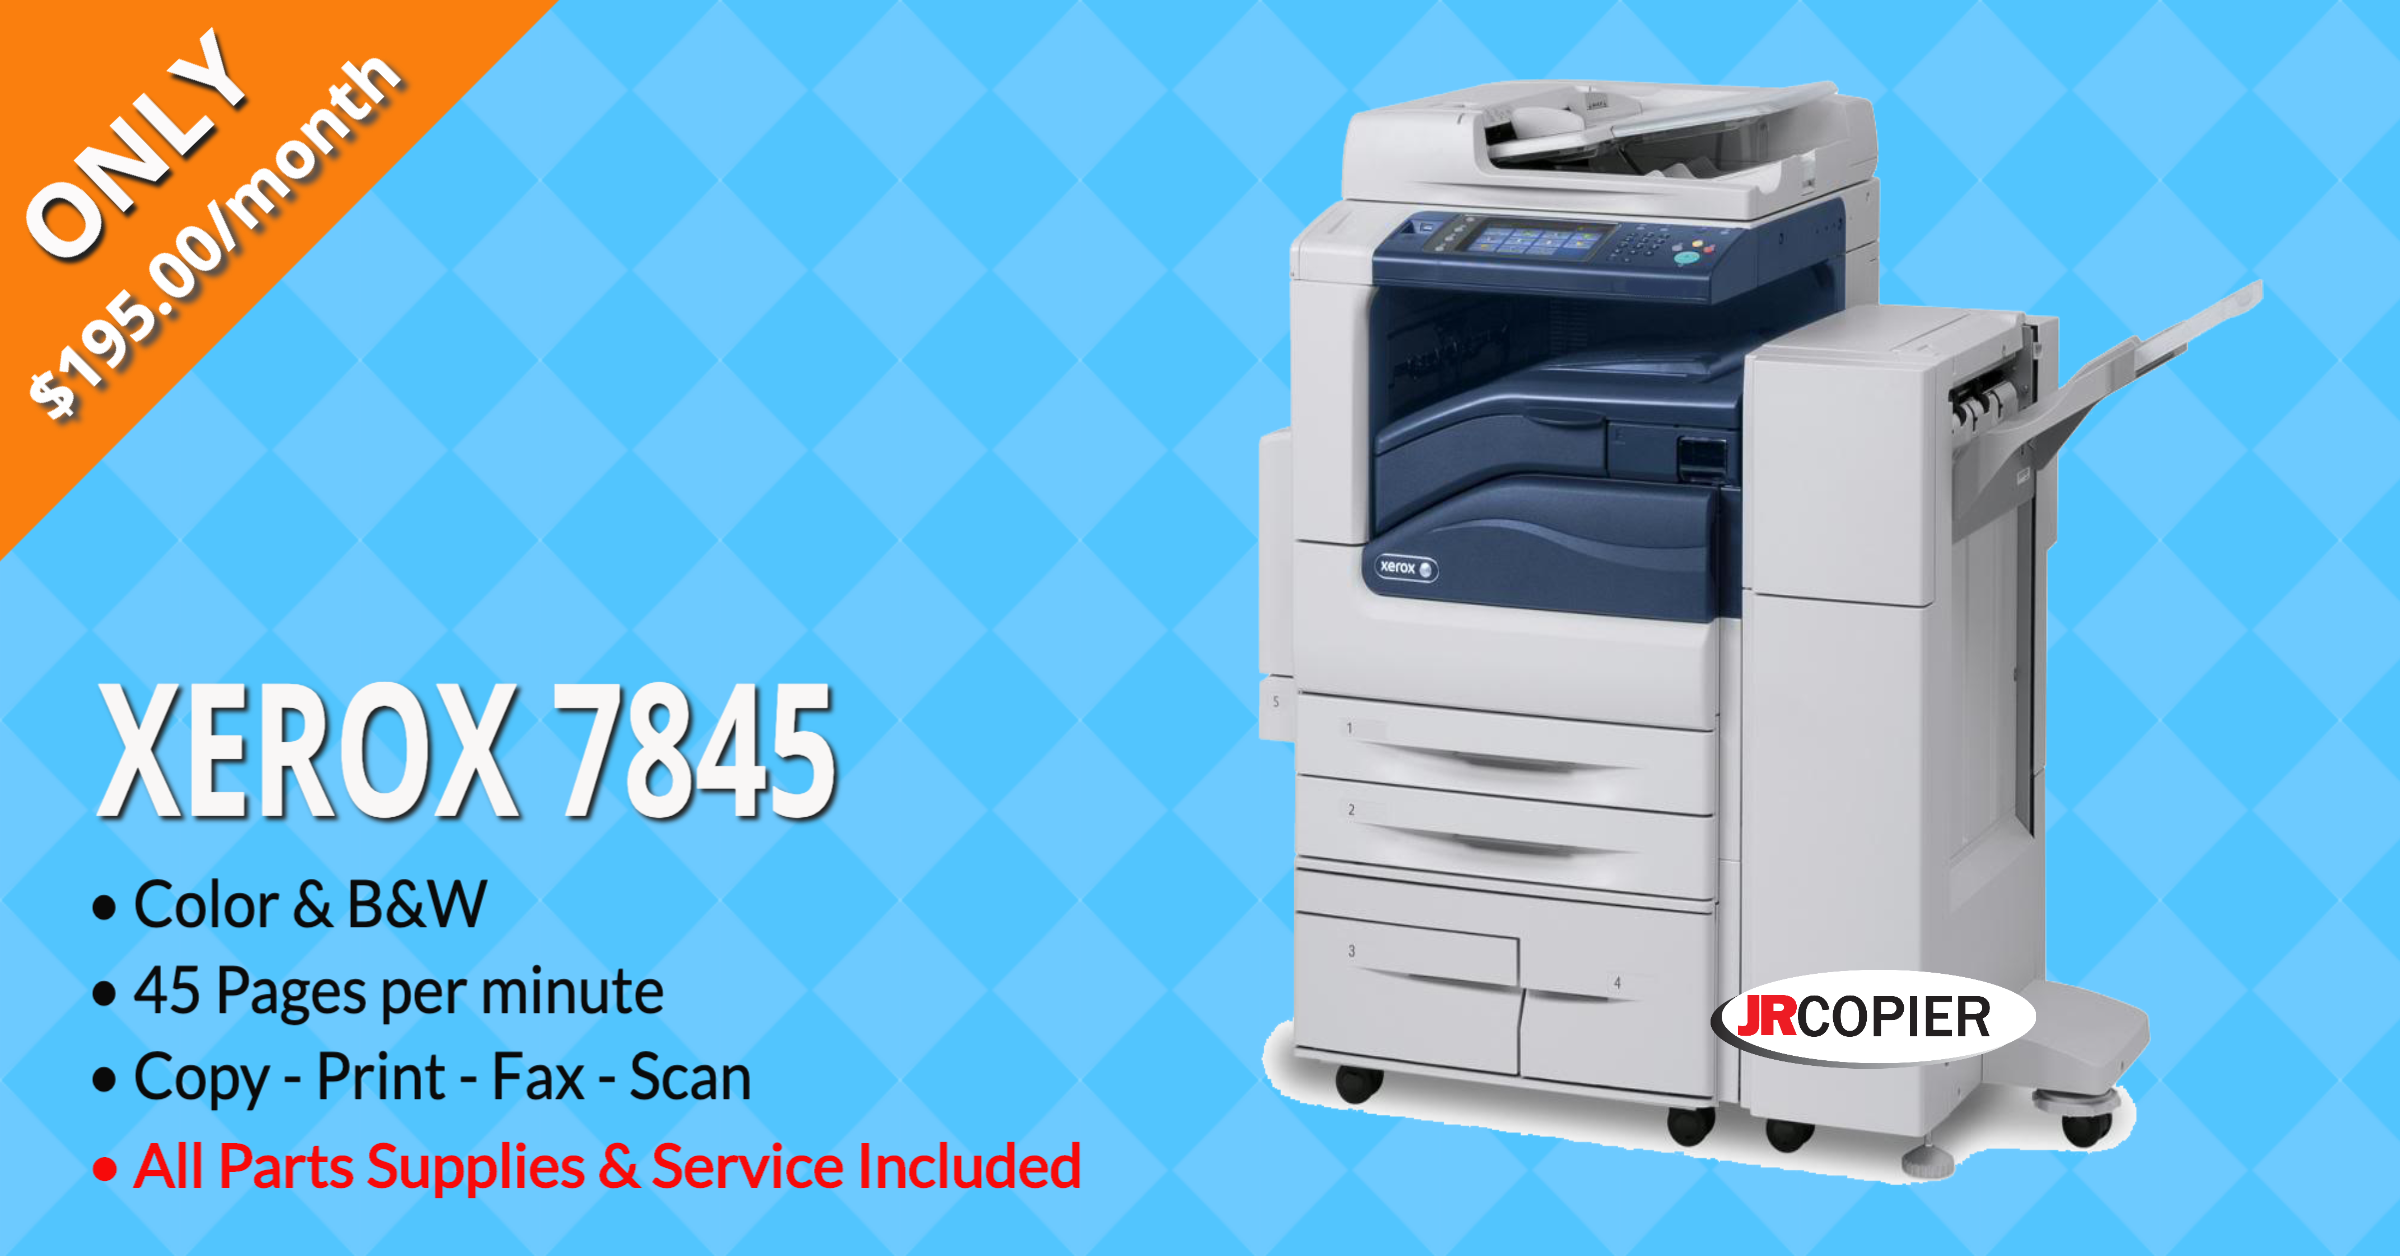 Copy Machine Companies 15025, 15122, 15236